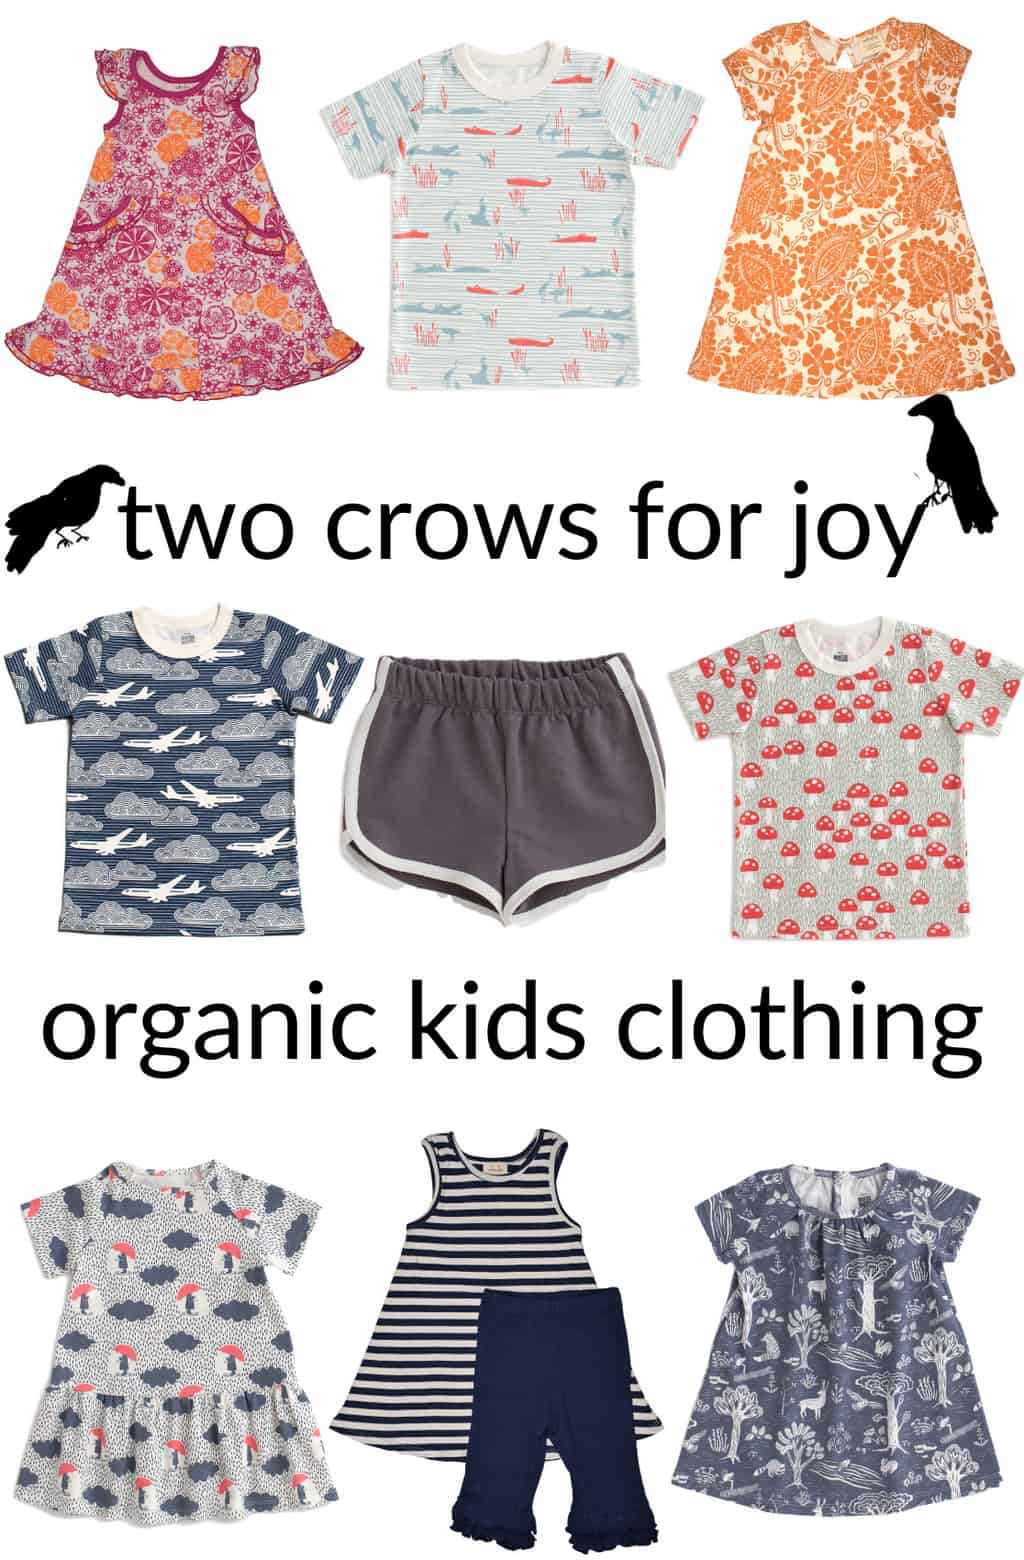 Clothing for Kids: Two Crows for Joy organic kids clothing